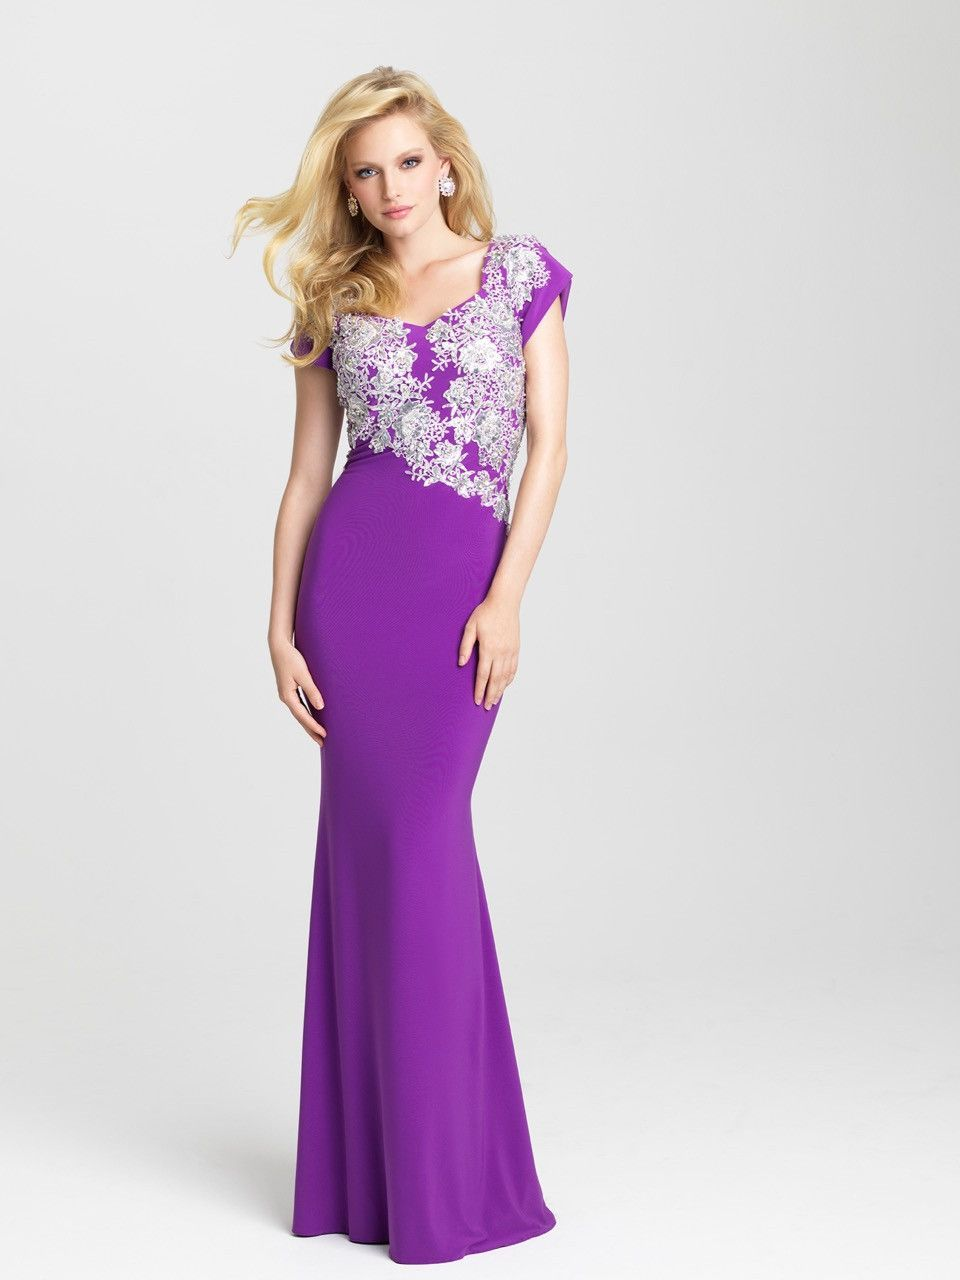 Madison James Prom 16-502M | Products | Pinterest